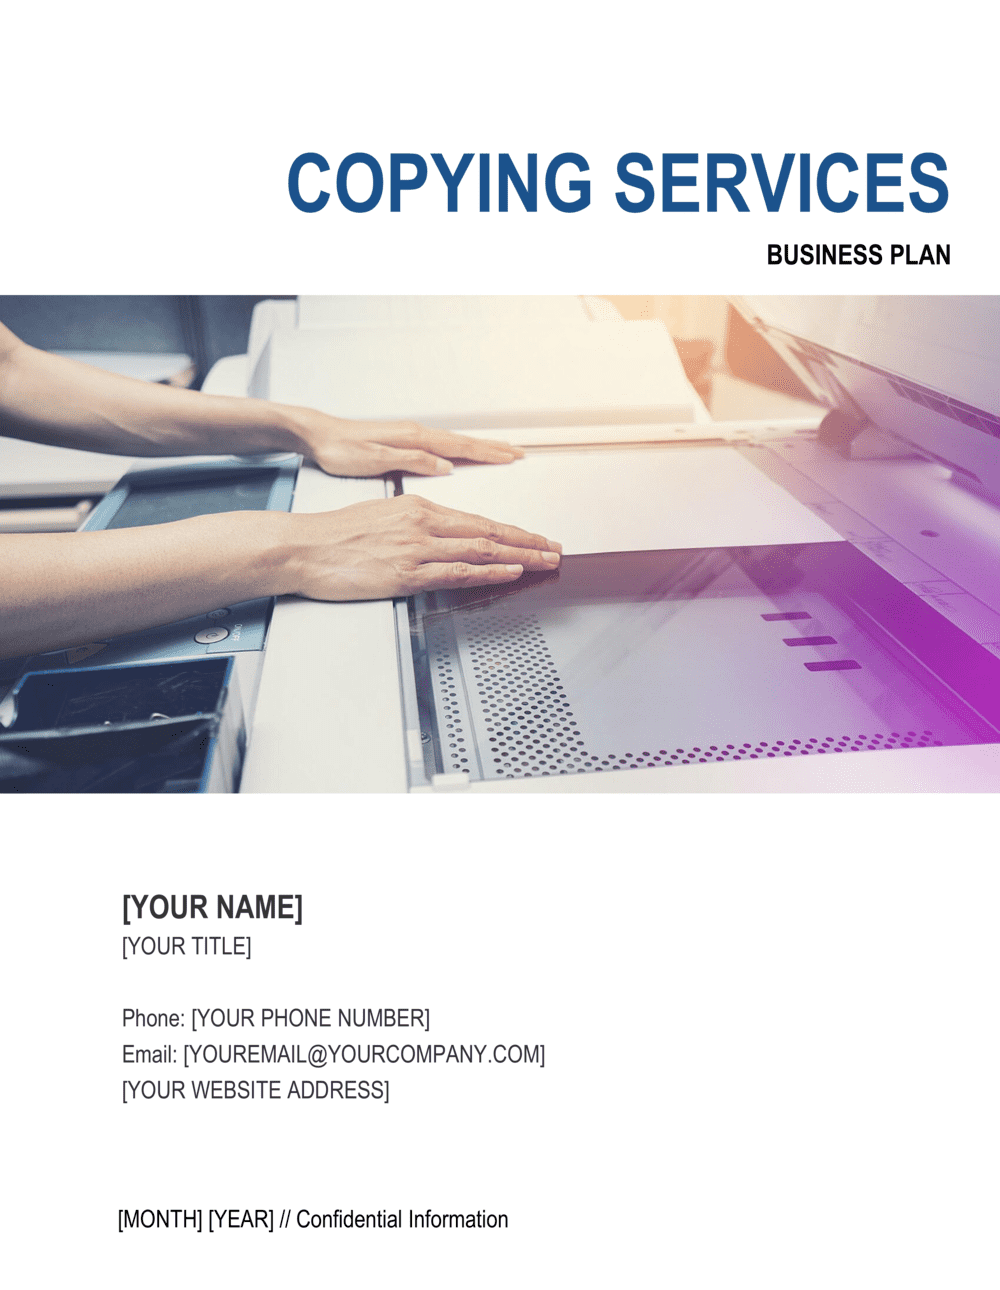 Business-in-a-Box's Copying Services Business Plan Template